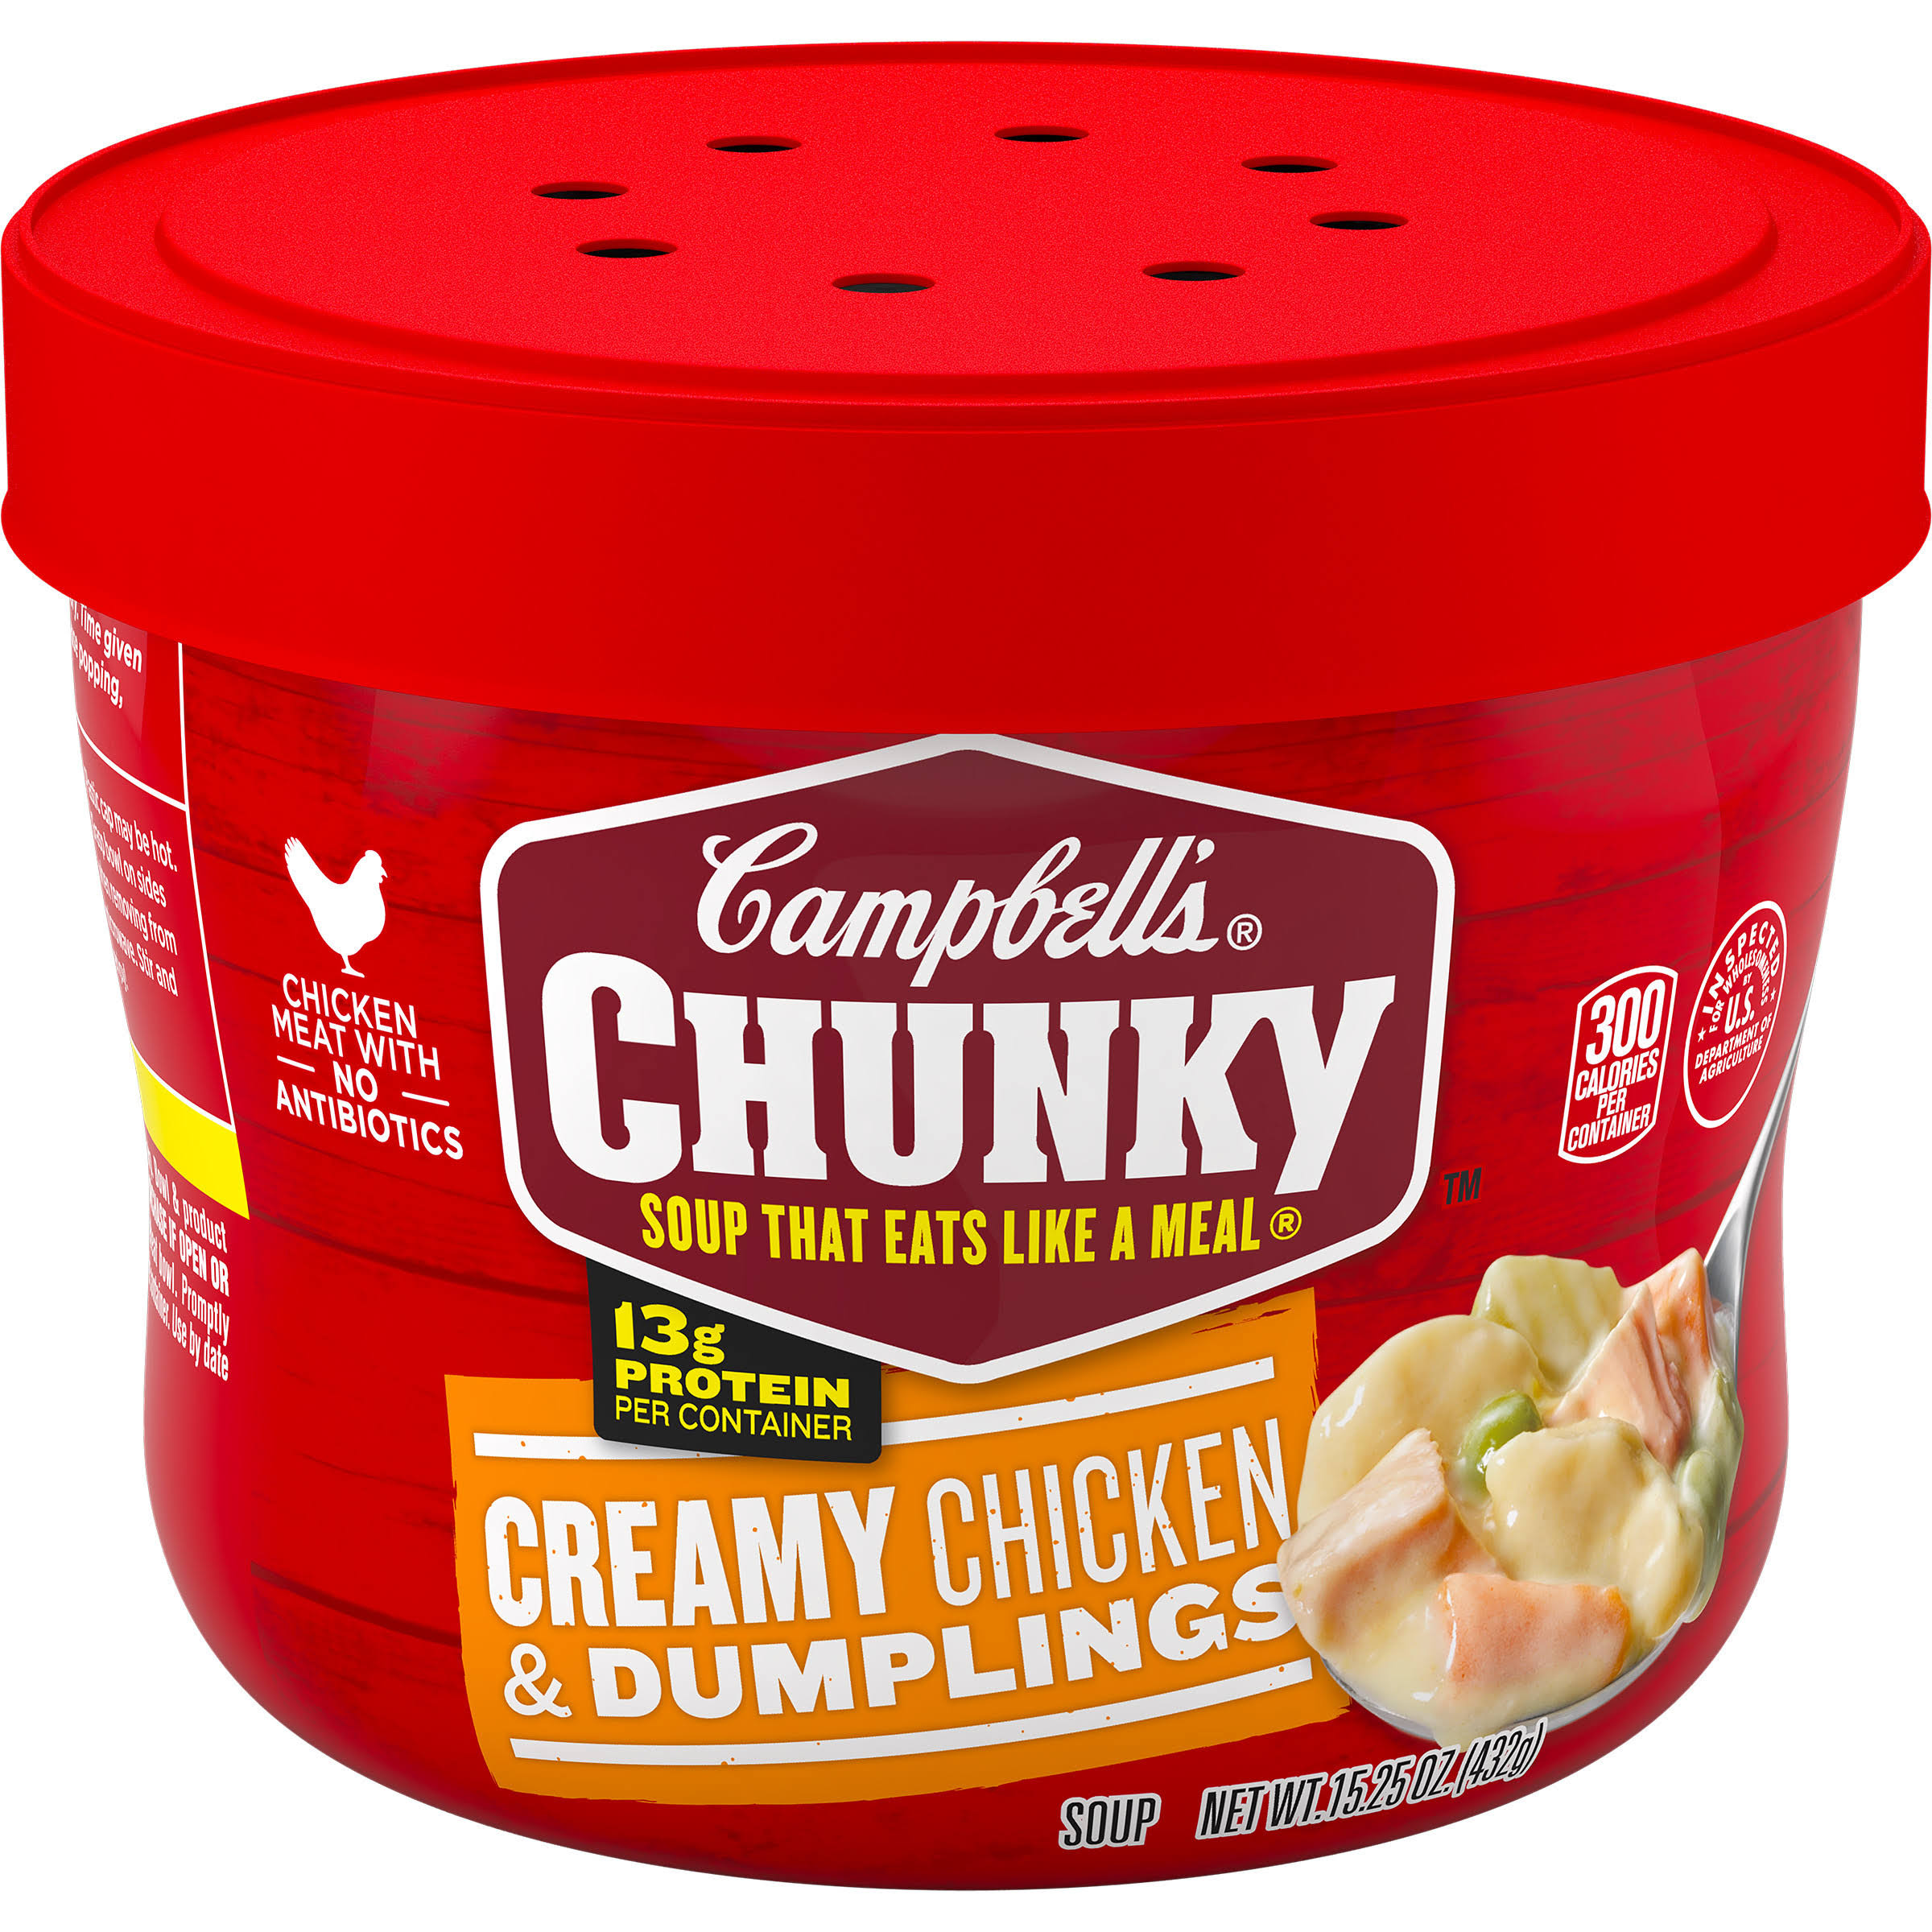 Campbell's Chunky Creamy Chicken & Dumplings Soup - 15.25 oz